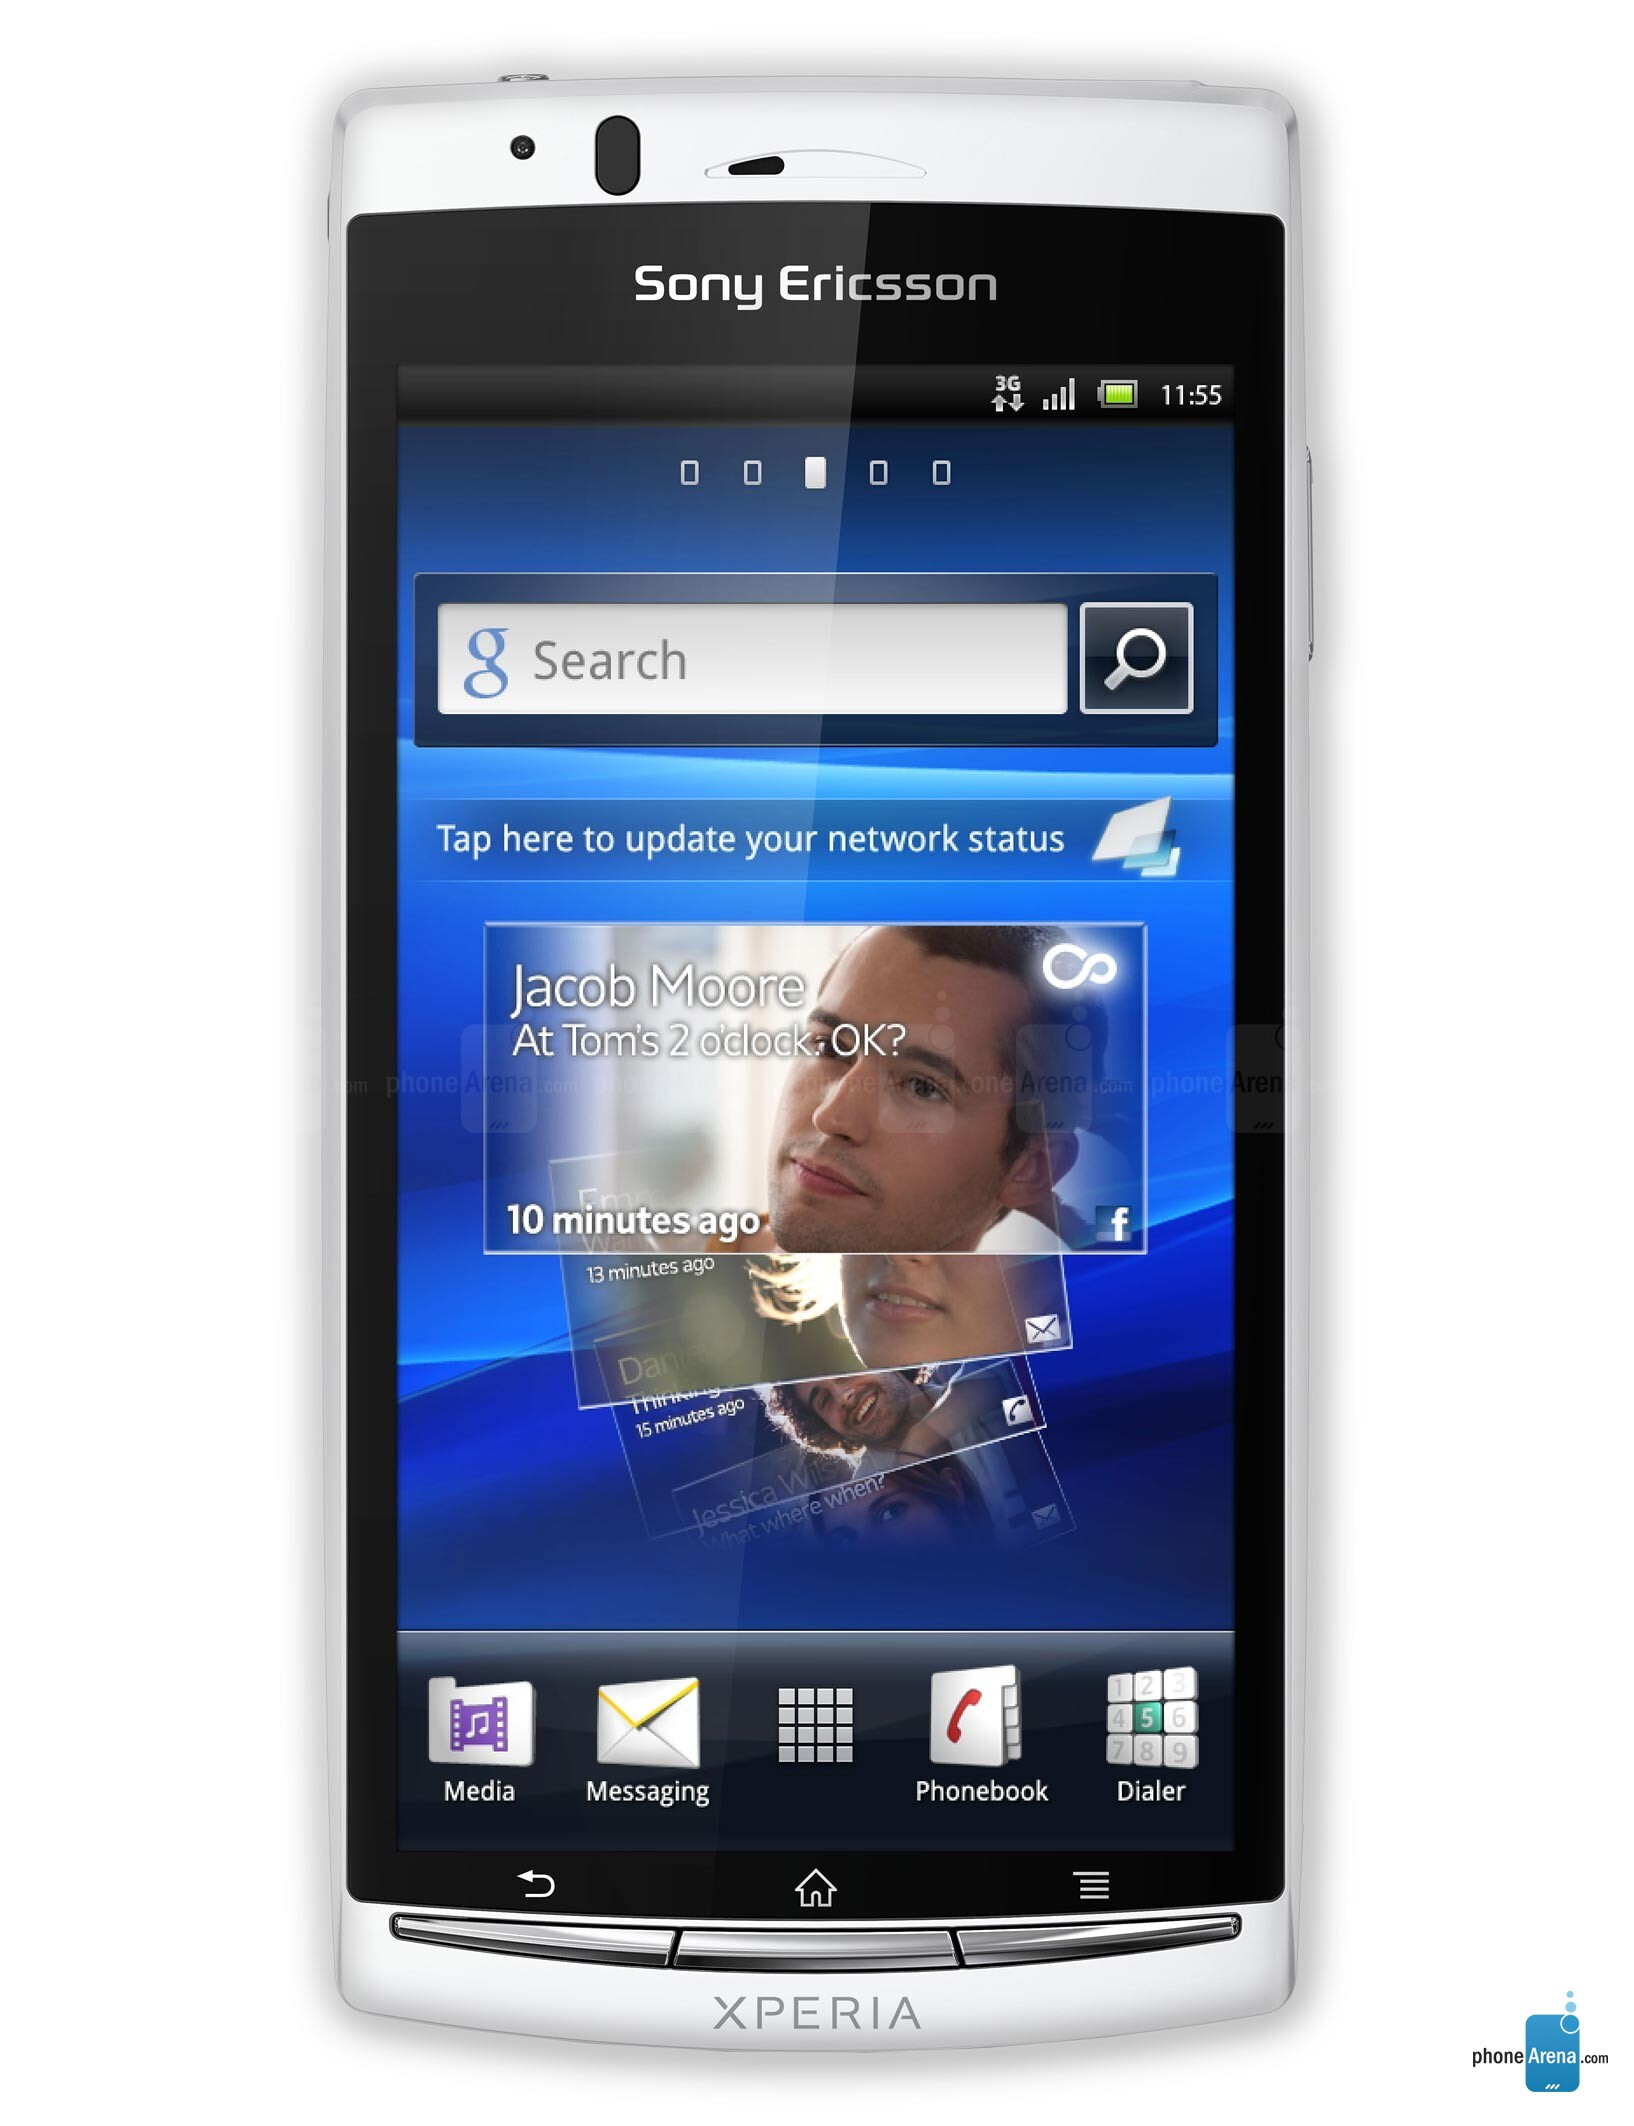 sony xperia phone with 8 megapixel camera